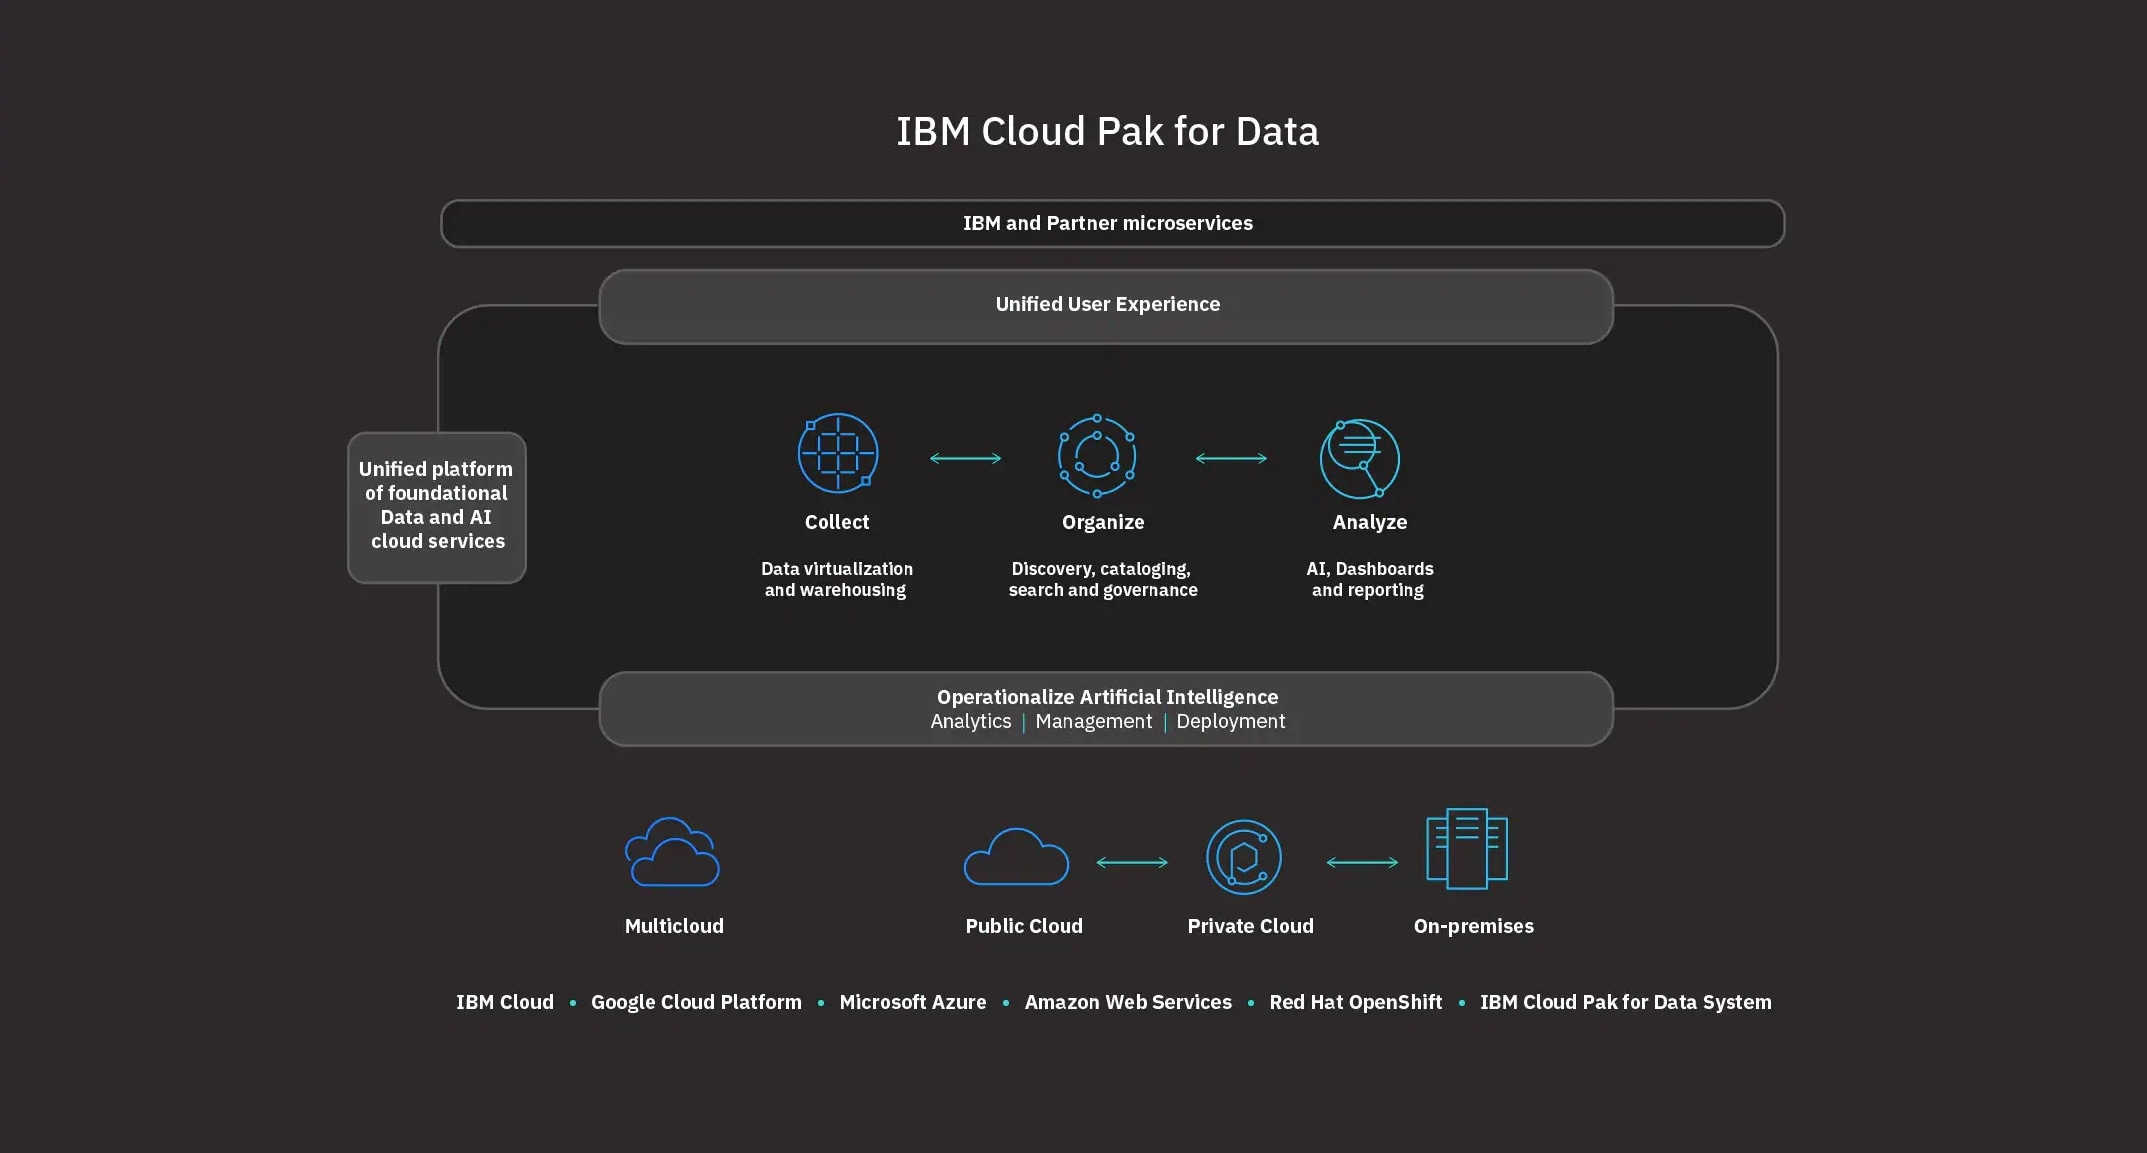 Still image from the IBM Cloud Pak for Data product walkthrough video